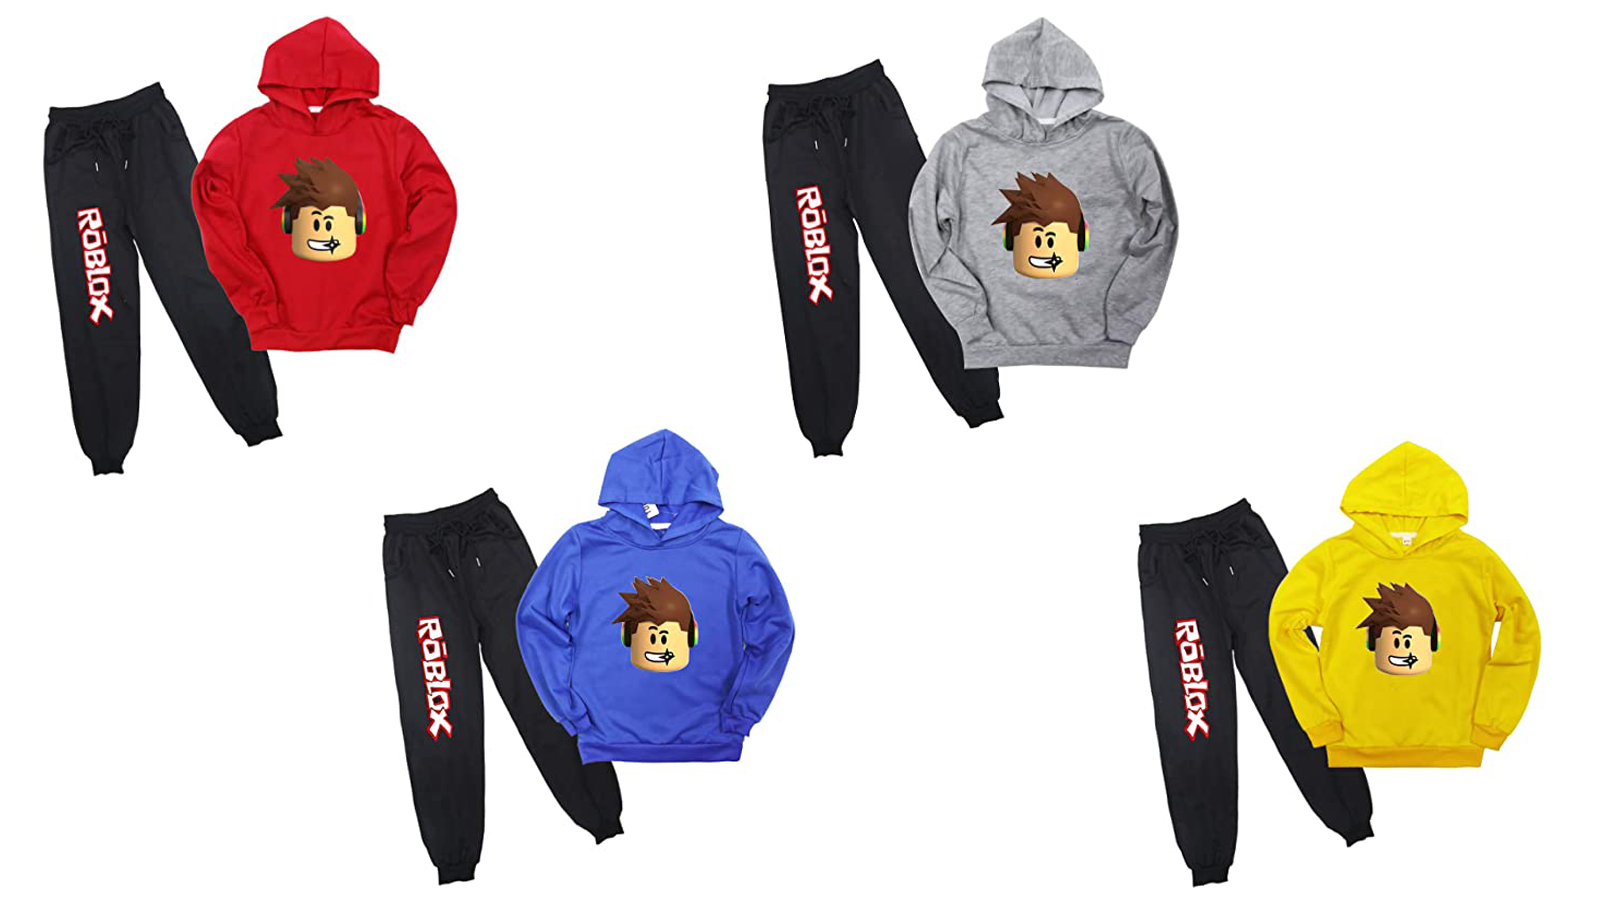 """The """"Roblox"""" Hoodie and Sweatpants Set in red, gray, blue, and yellow."""